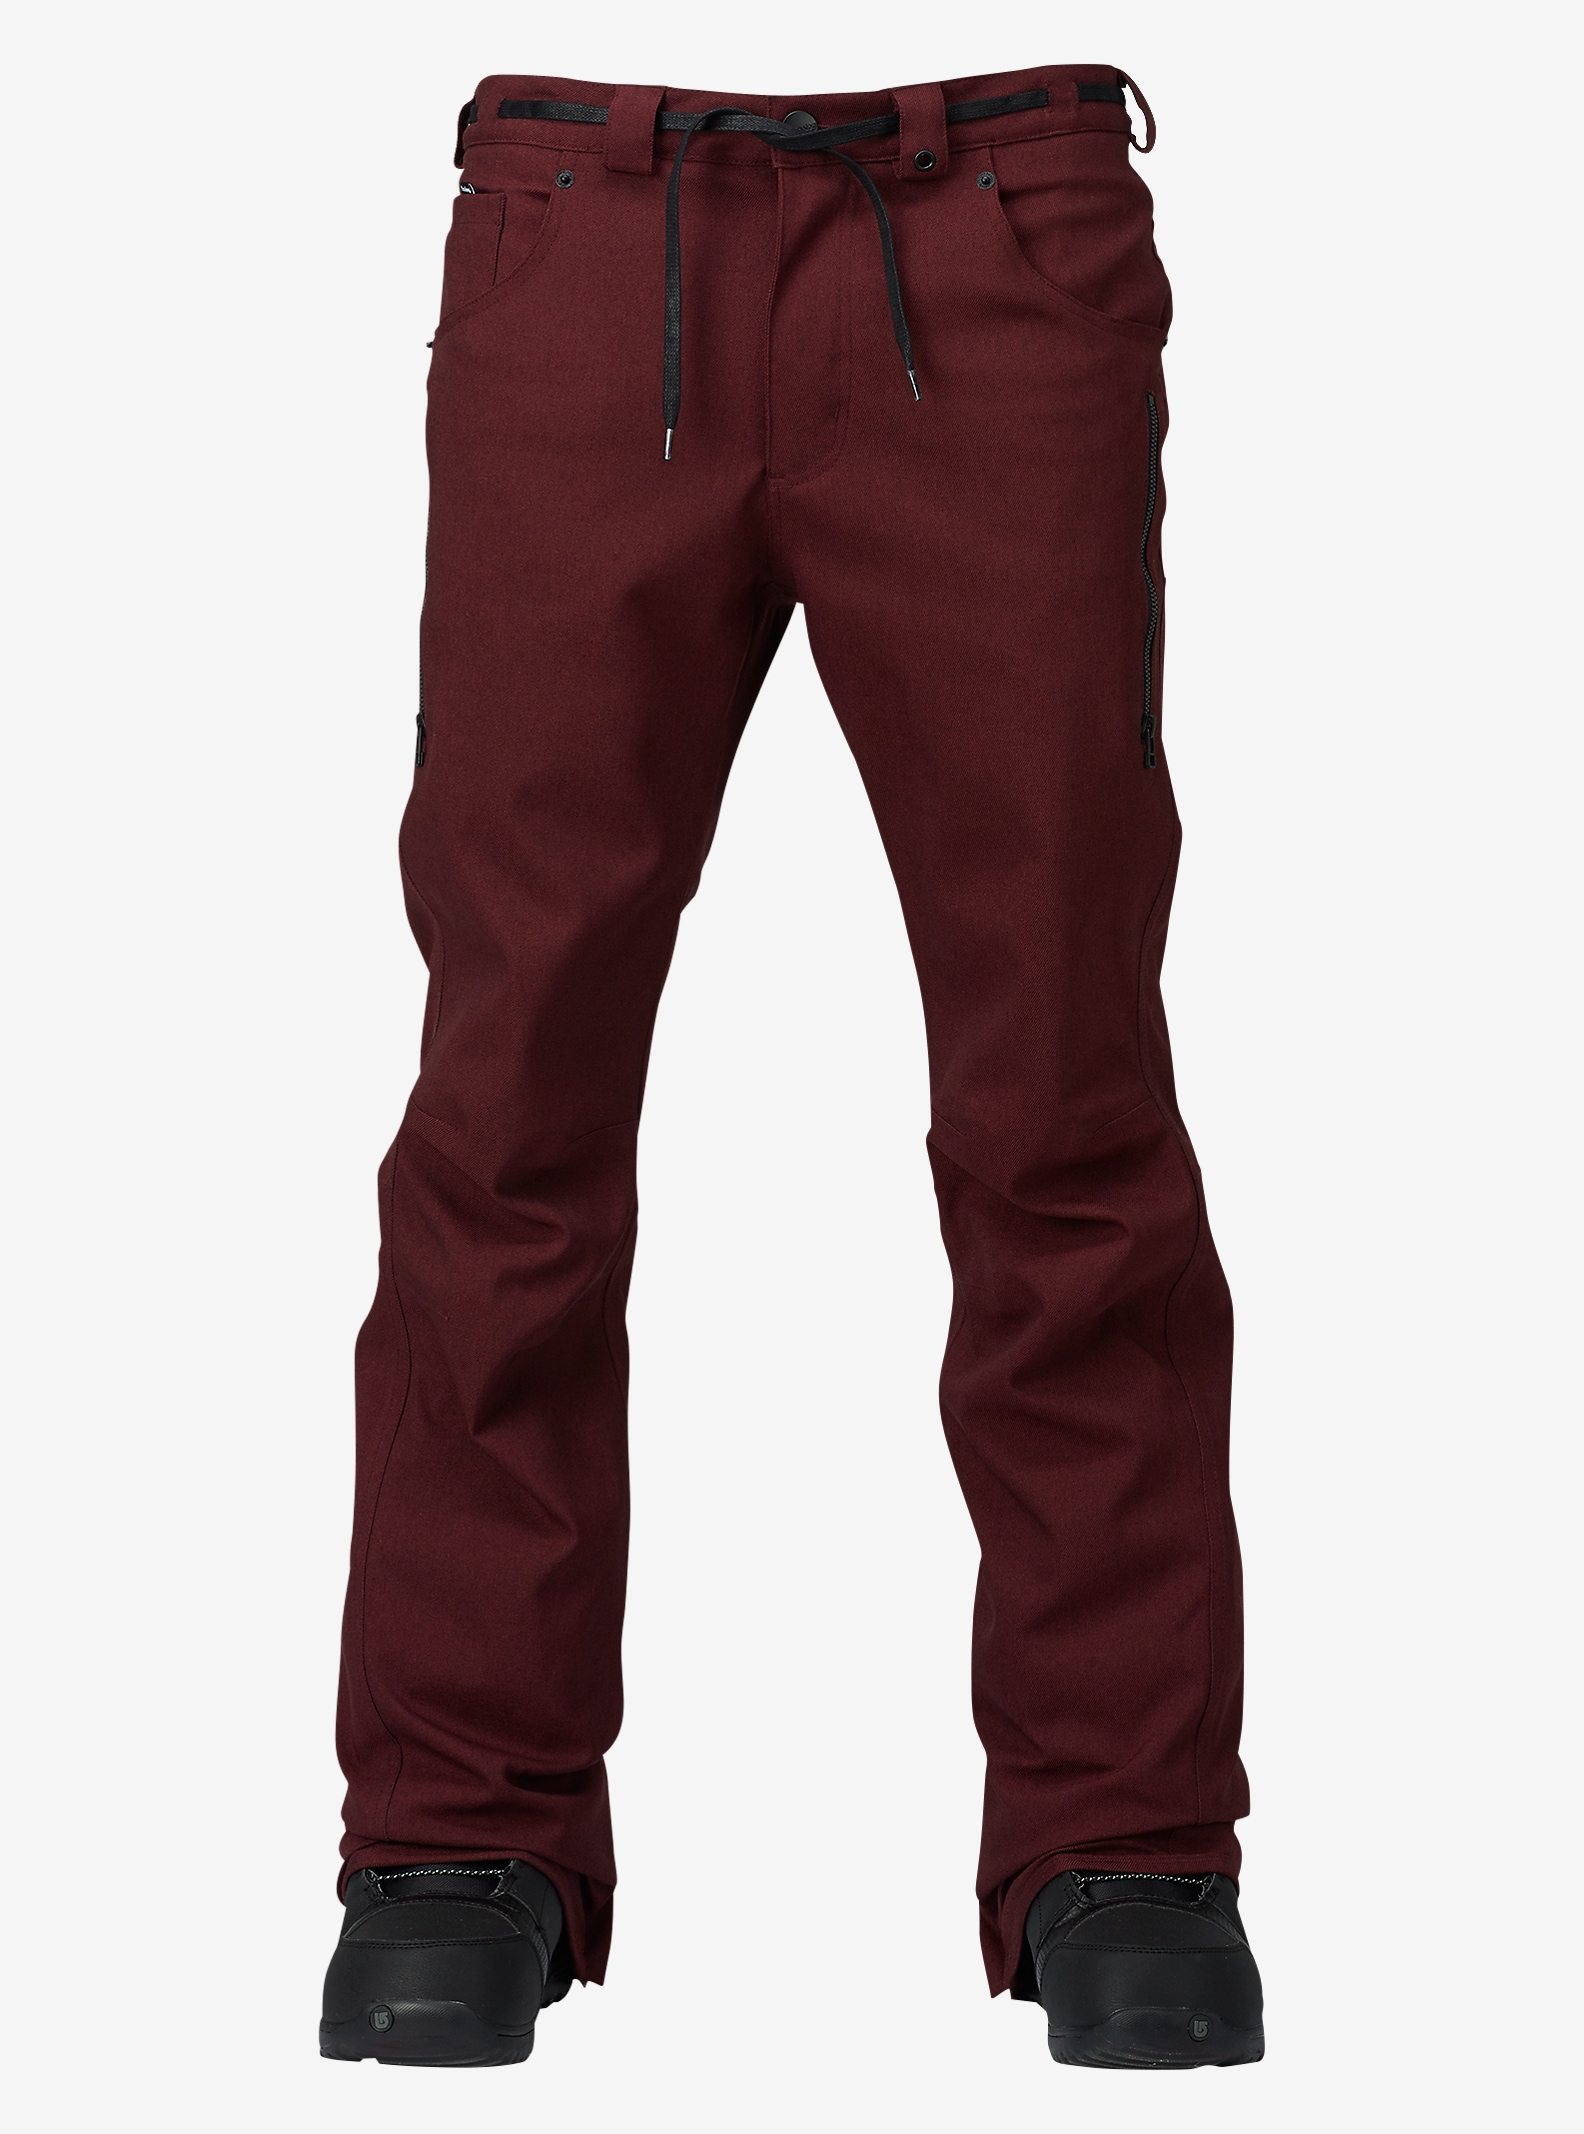 Analog Remer Slim Pant shown in Deep Purple